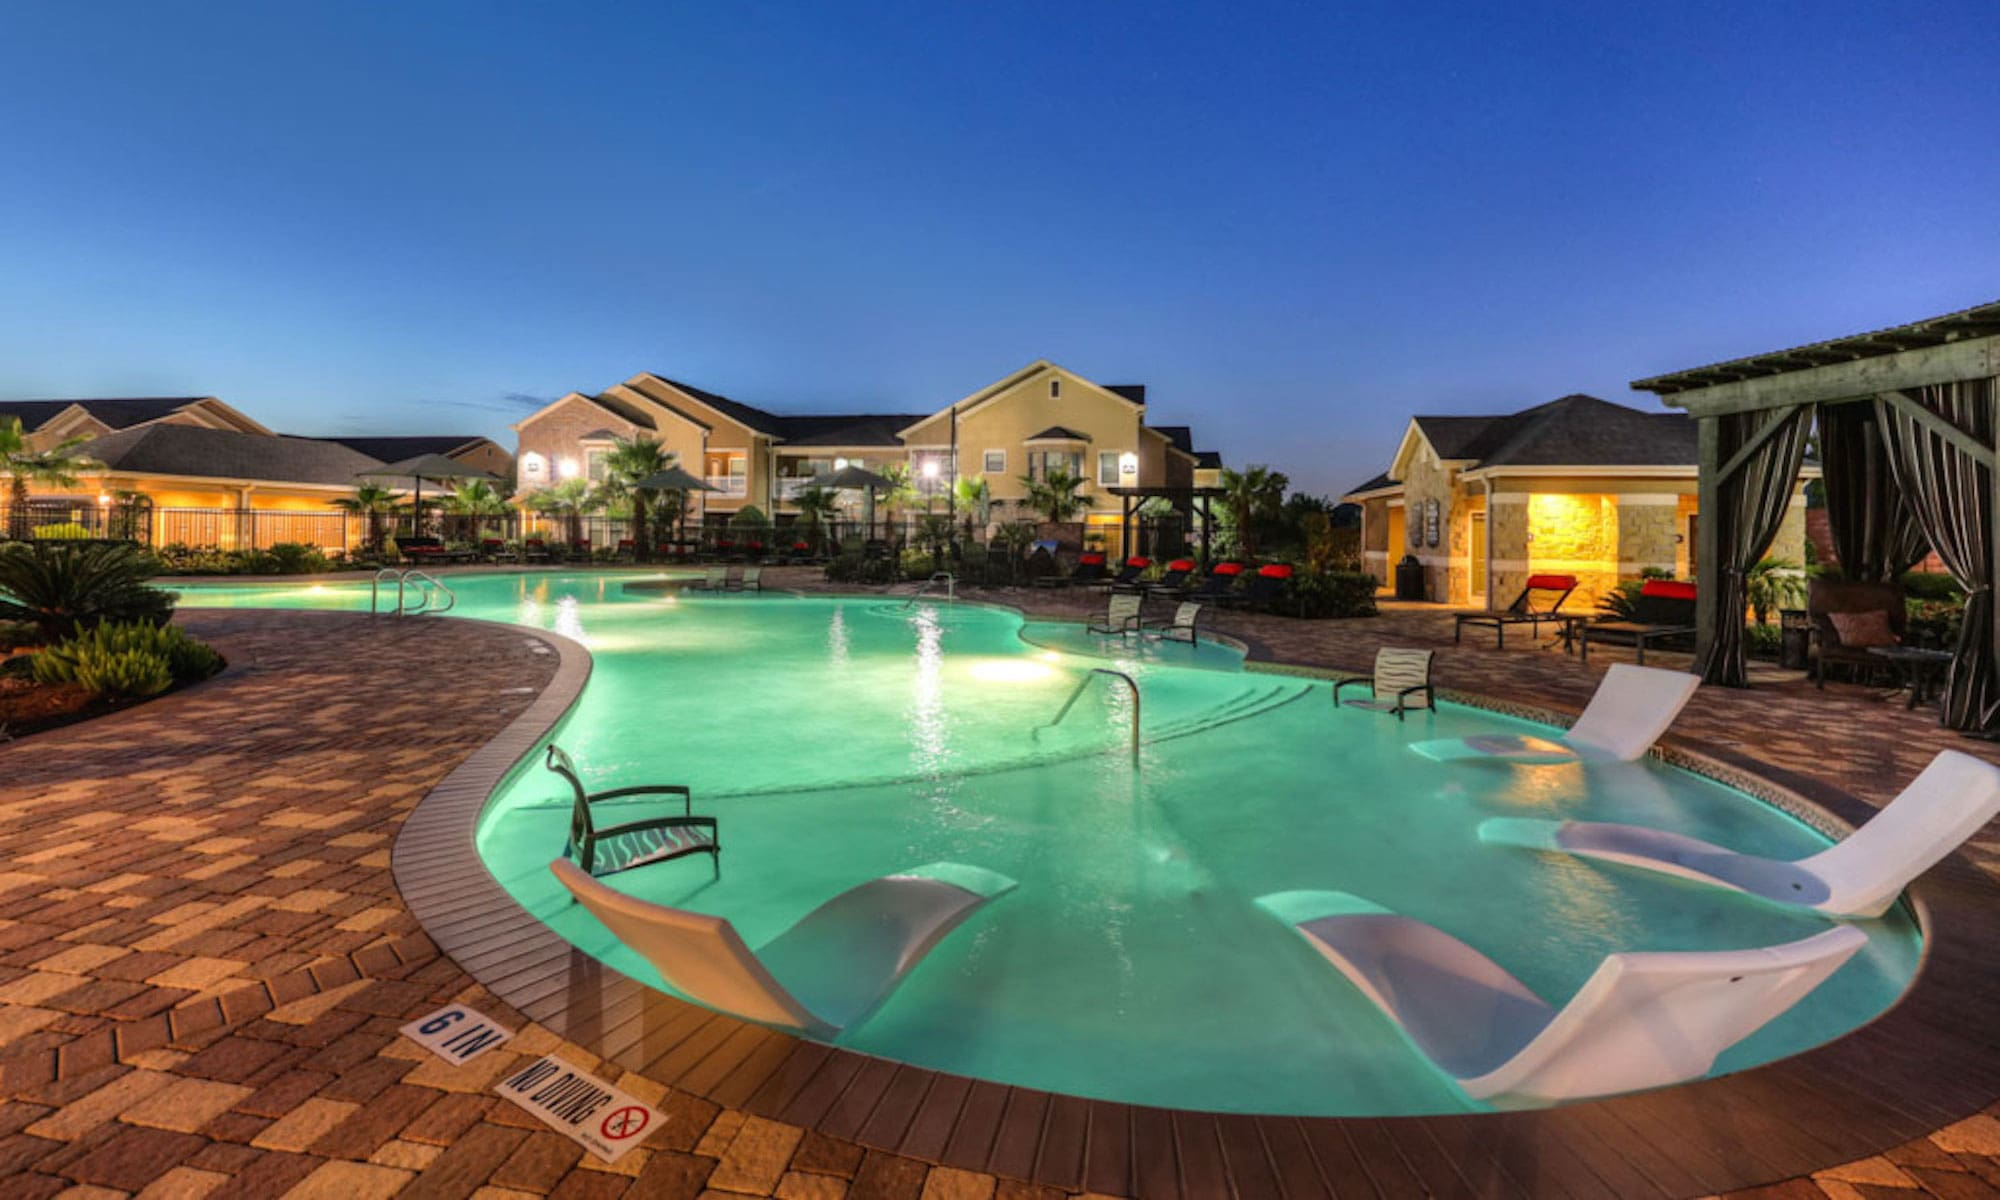 4 Bedroom Apartments Pearland Texas - Apartments in pearland tx